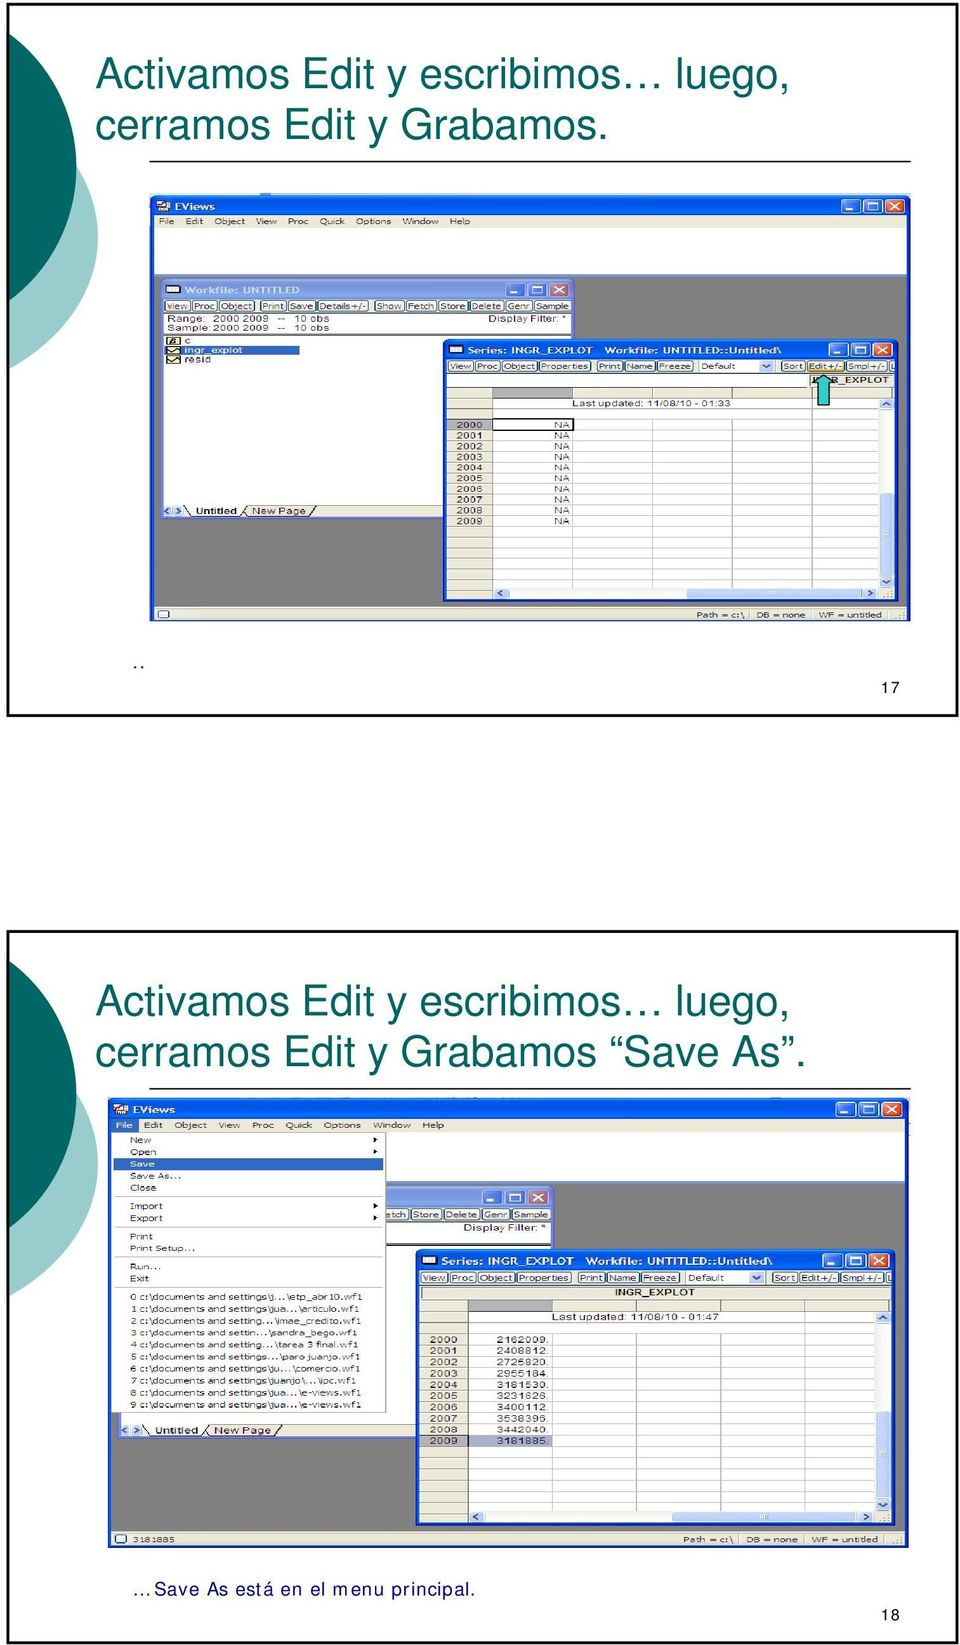 .. 17  cerramos Edit y Grabamos Save As.